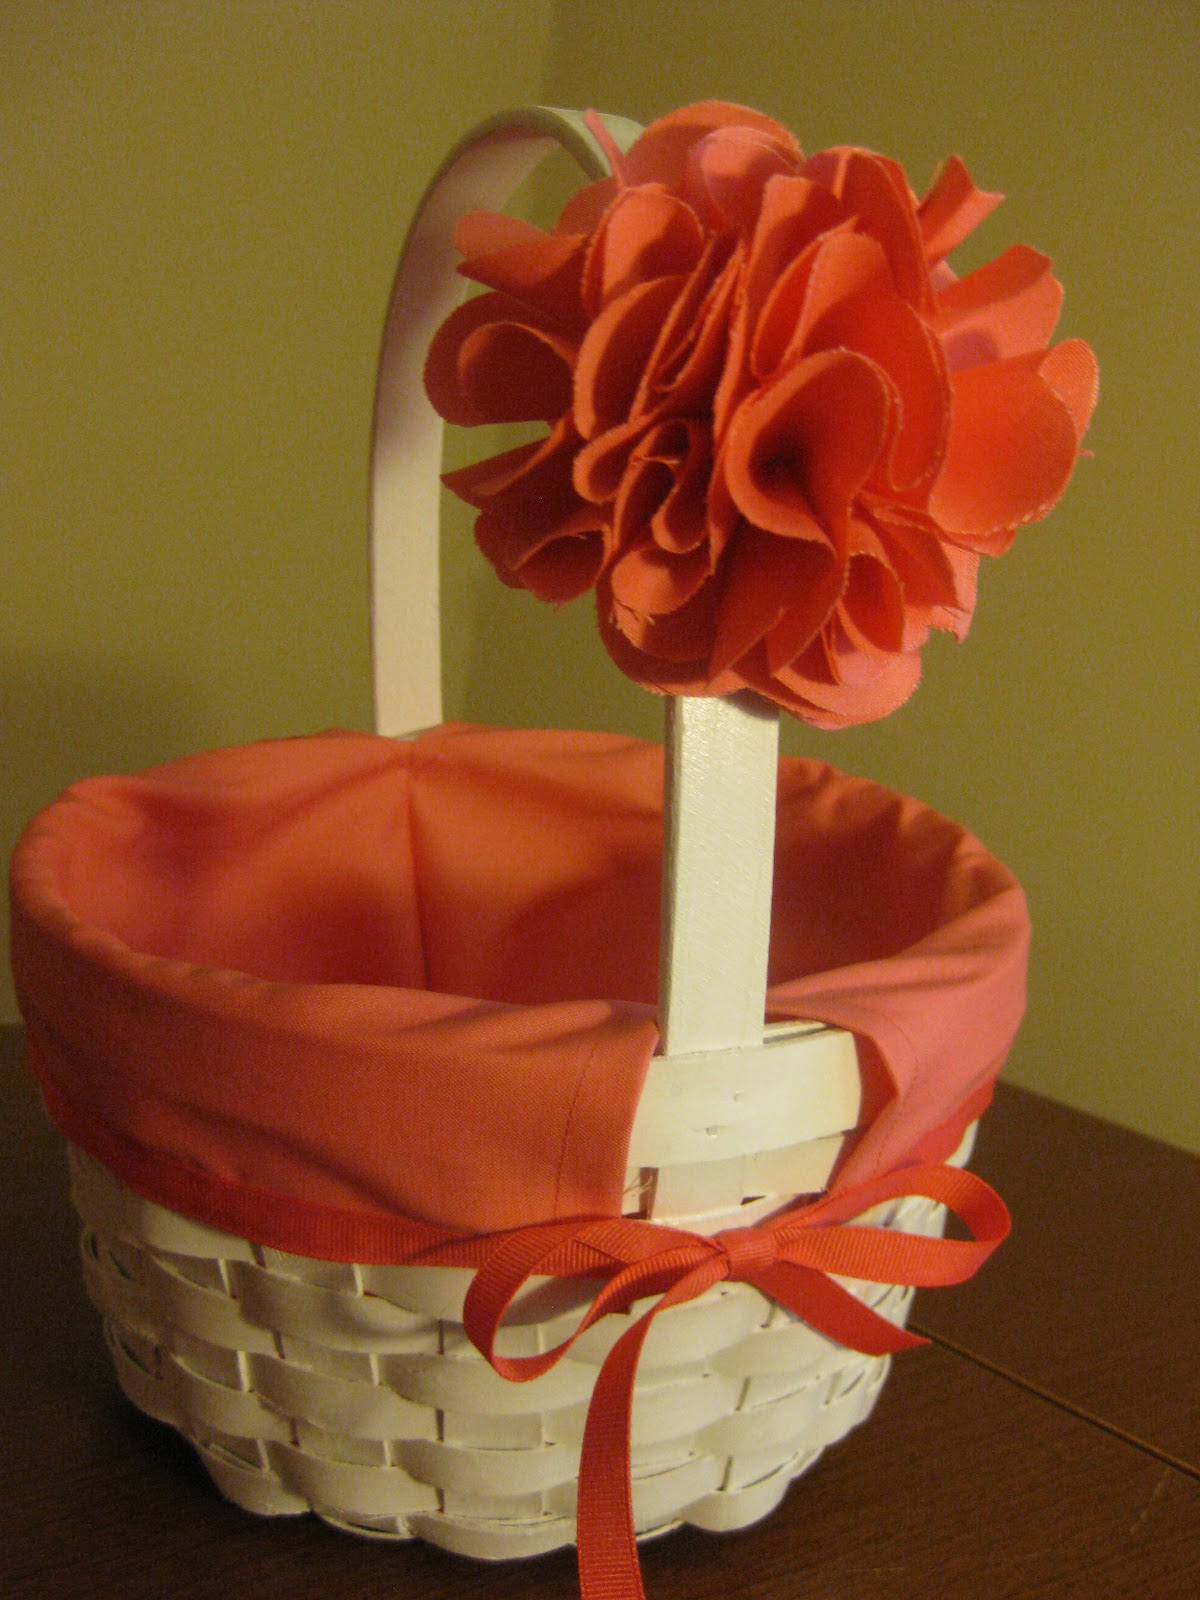 How To Make A Flower Girl Basket With Fabric : Bonnieprojects flower girl baskets with exchangable liners